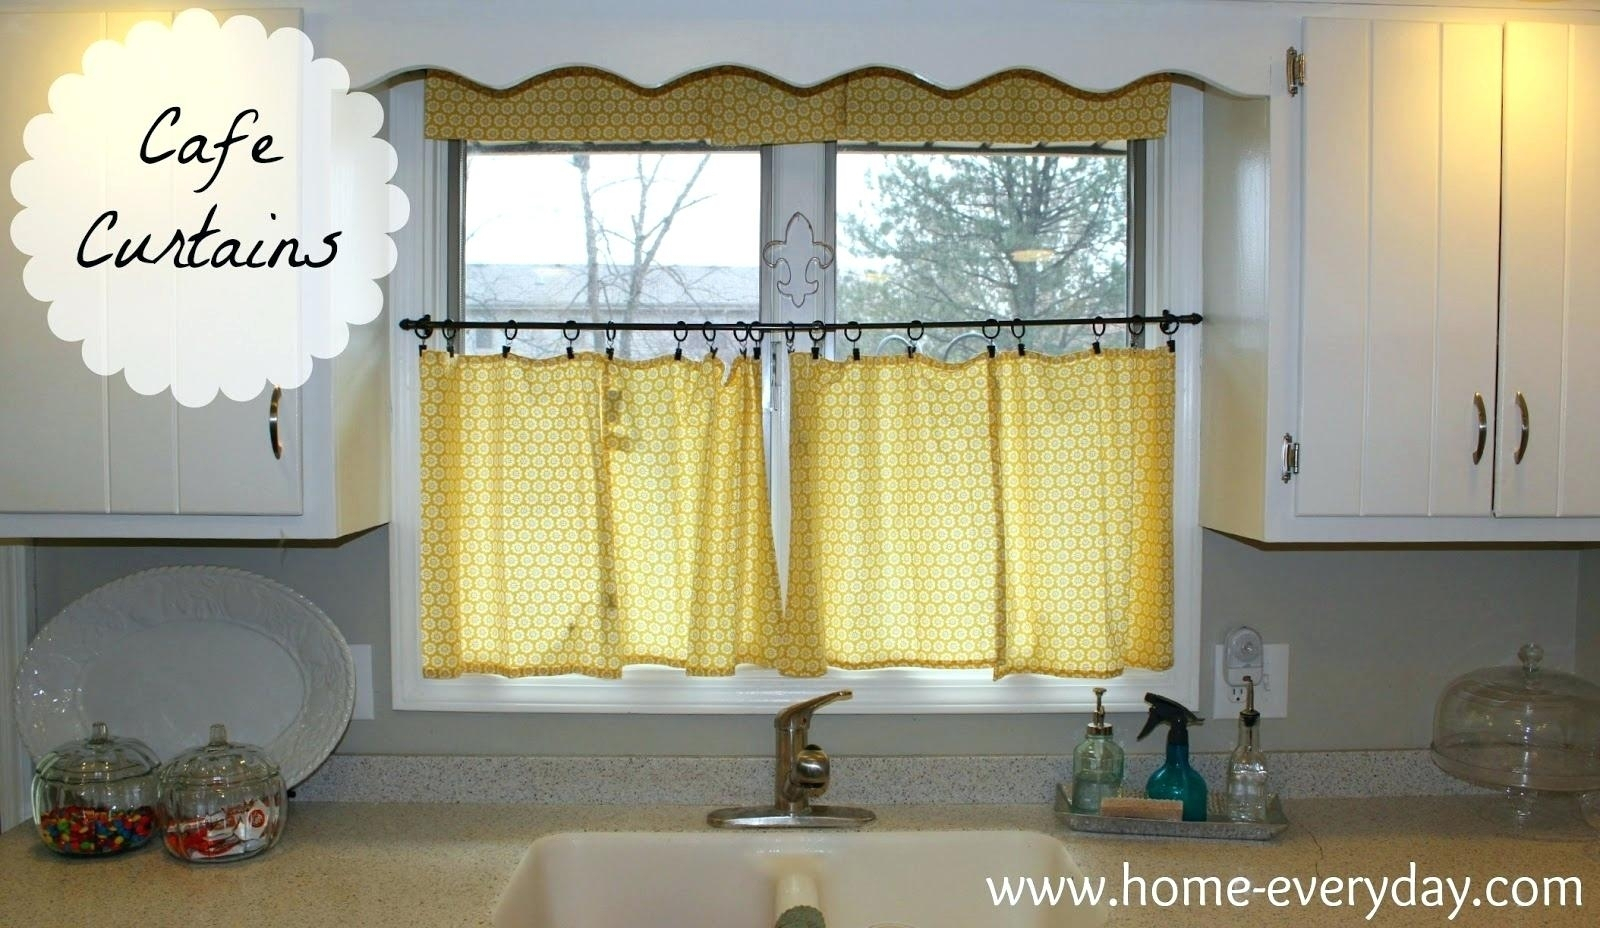 Kitchen Tier Curtains Cafe Curtains Target Kitchen Tier With Kitchen Window Tier Sets (Gallery 4 of 20)